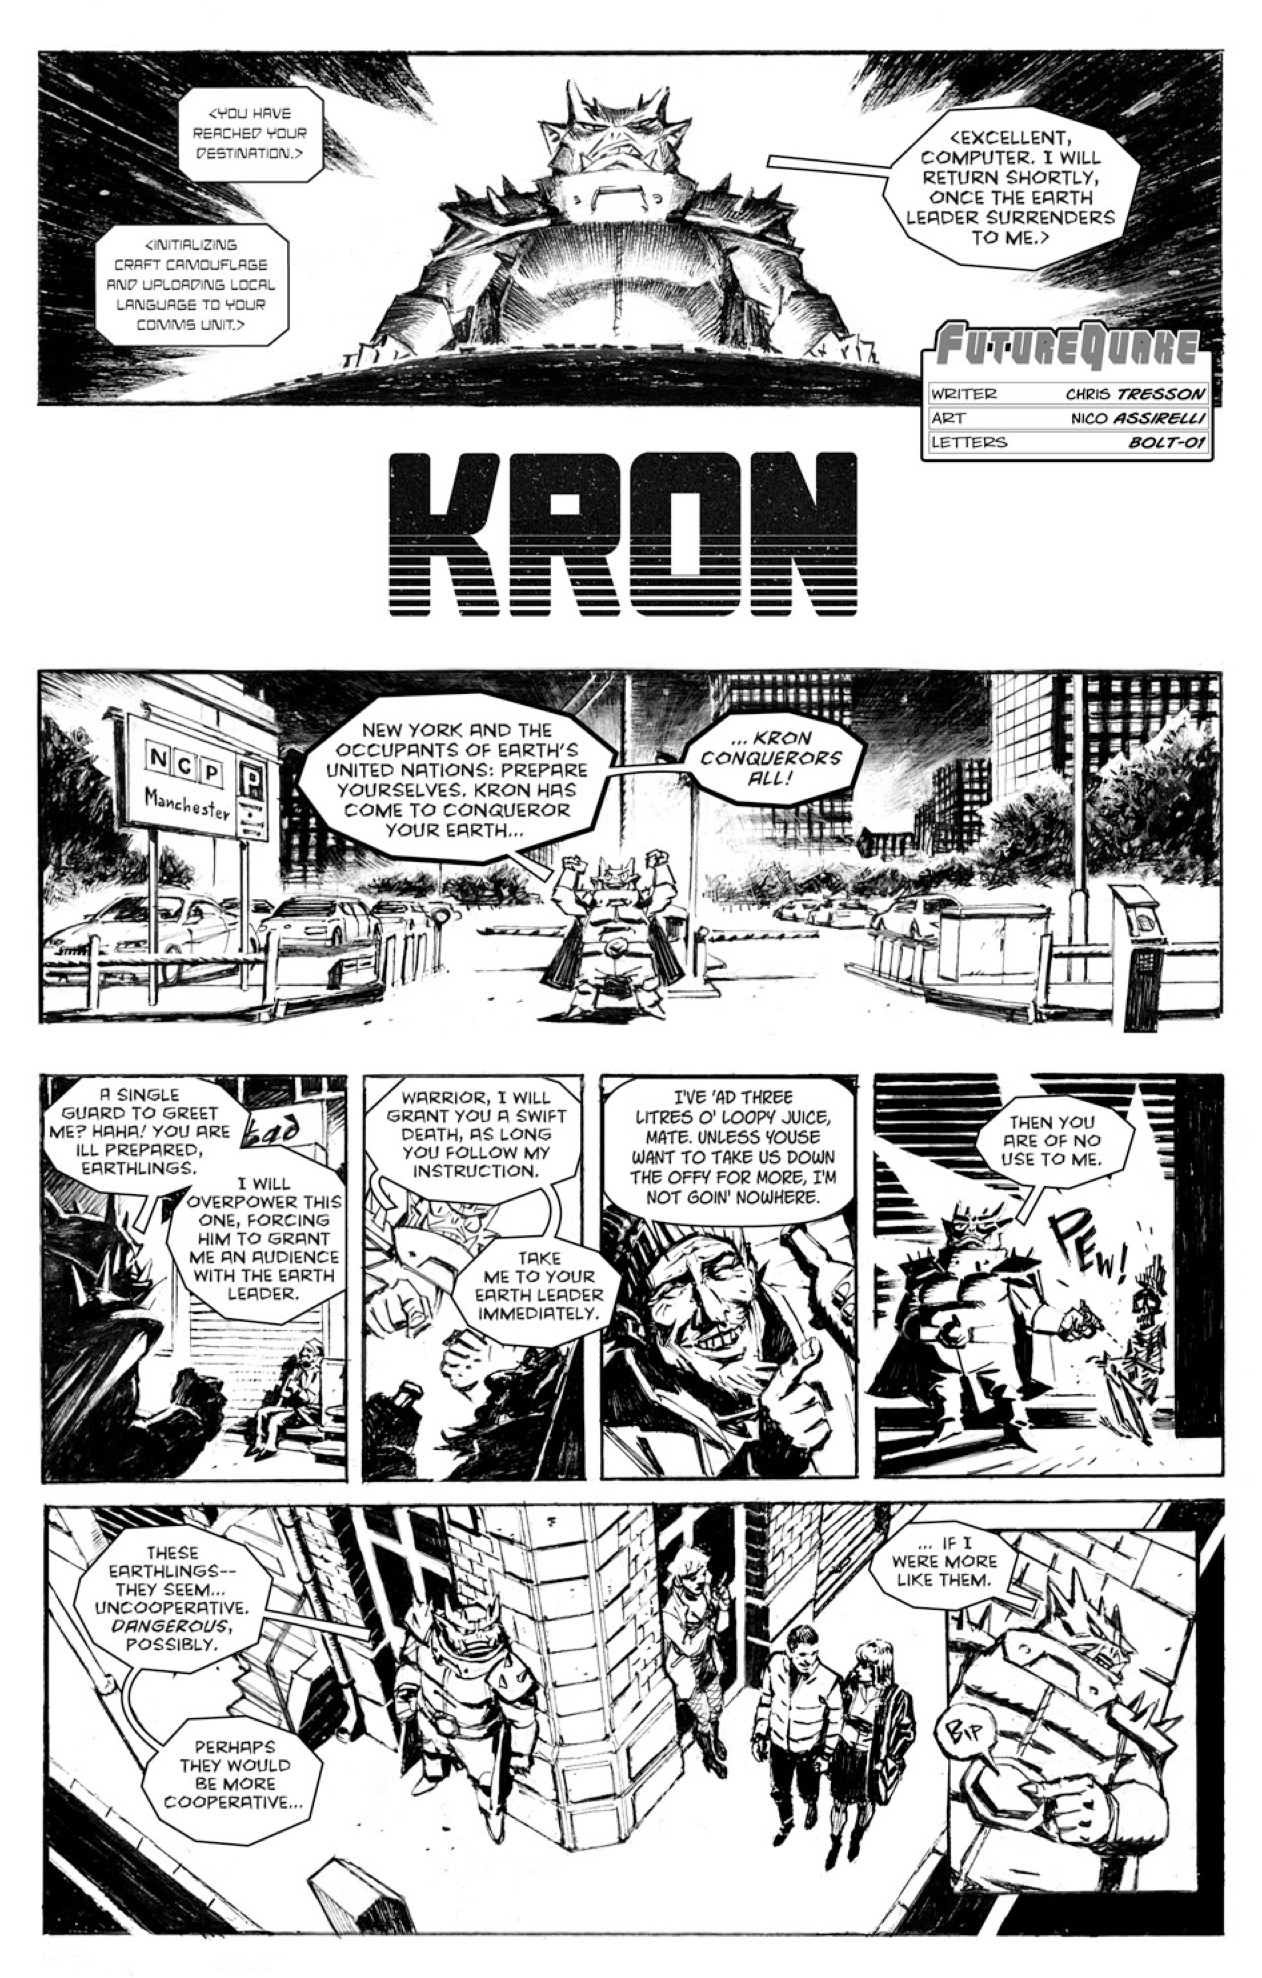 """FutureQuake Summer 2017 - Kron by """"Kron"""" Written by Chris Tresson Art by Nico Assirelli Letters by Bolt-01"""